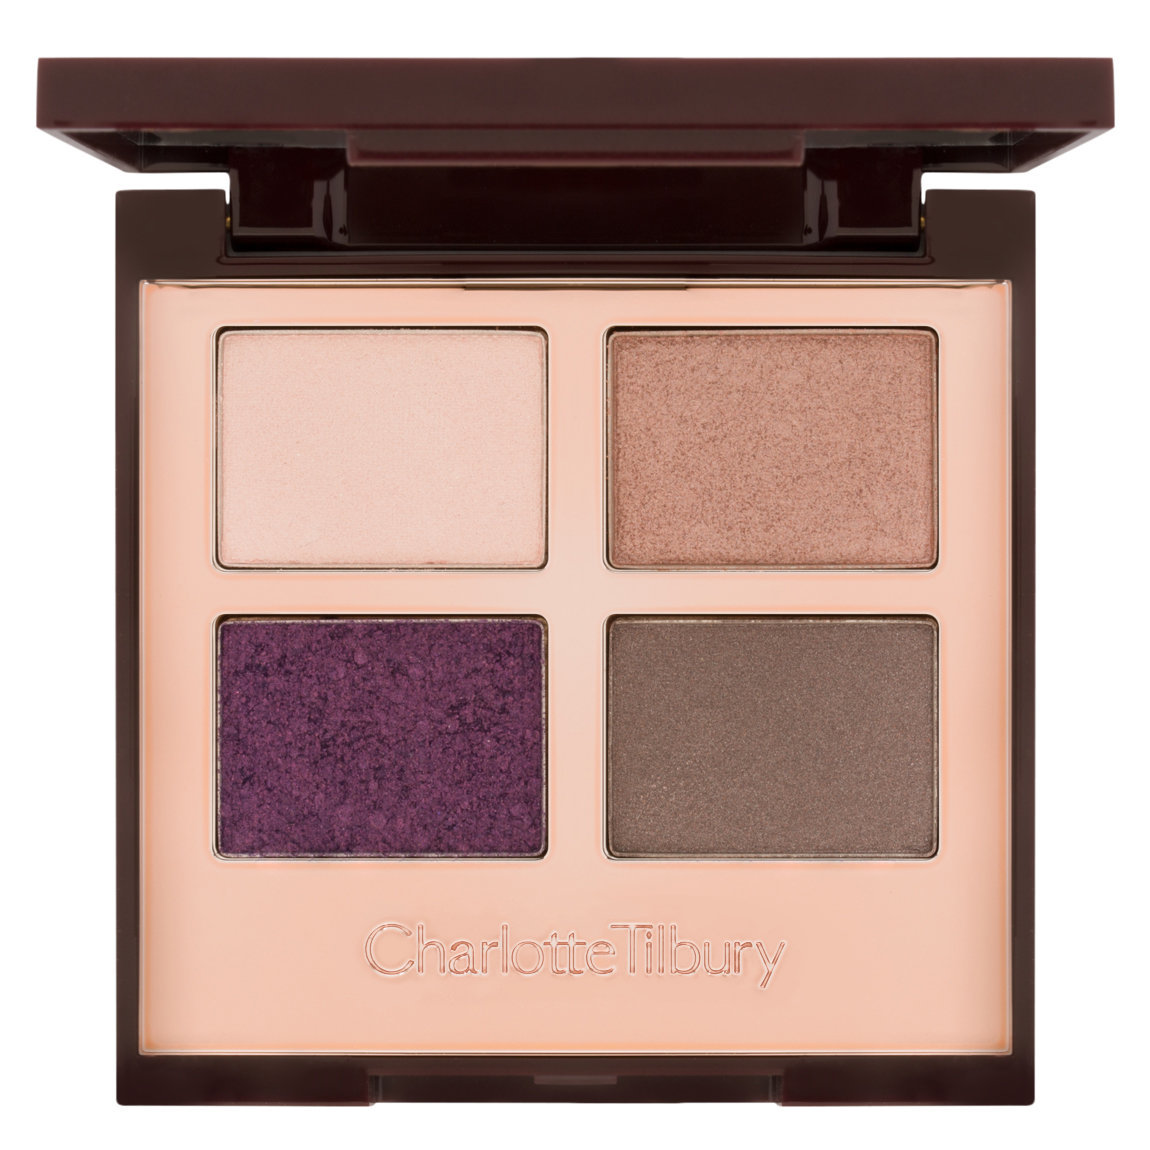 Charlotte Tilbury Luxury Palette The Glamour Muse product smear.